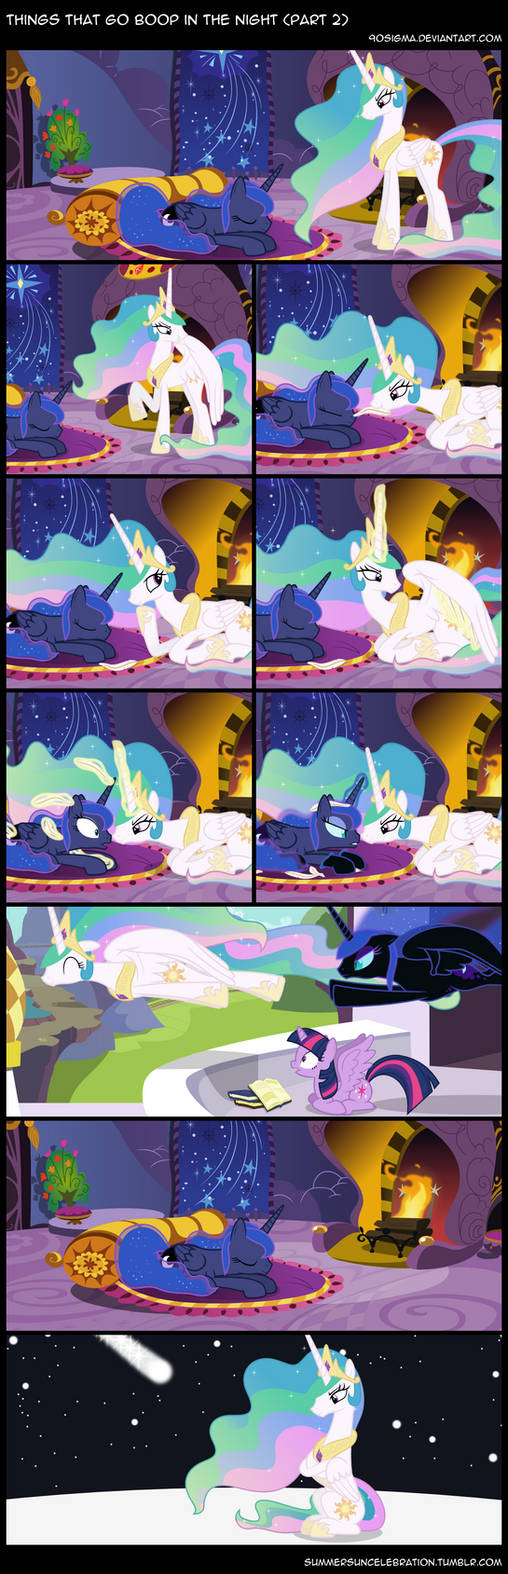 Things That Go Boop in the Night (Part 2) by 90Sigma